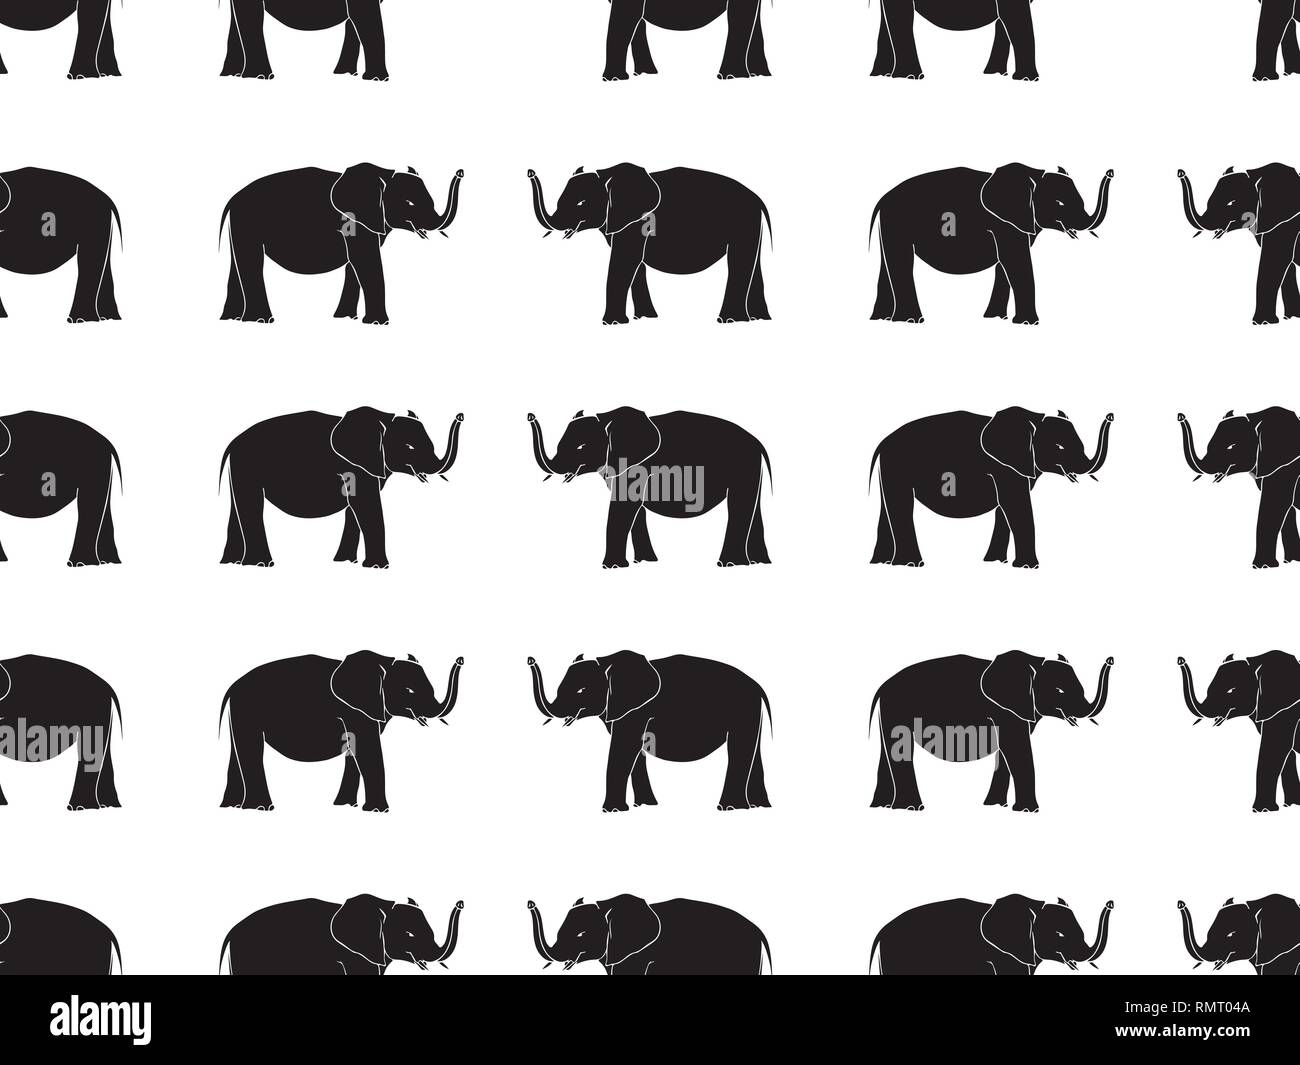 Seamless pattern with hand drawn elephant silhouettes vector illustration. Black on White background. - Stock Image